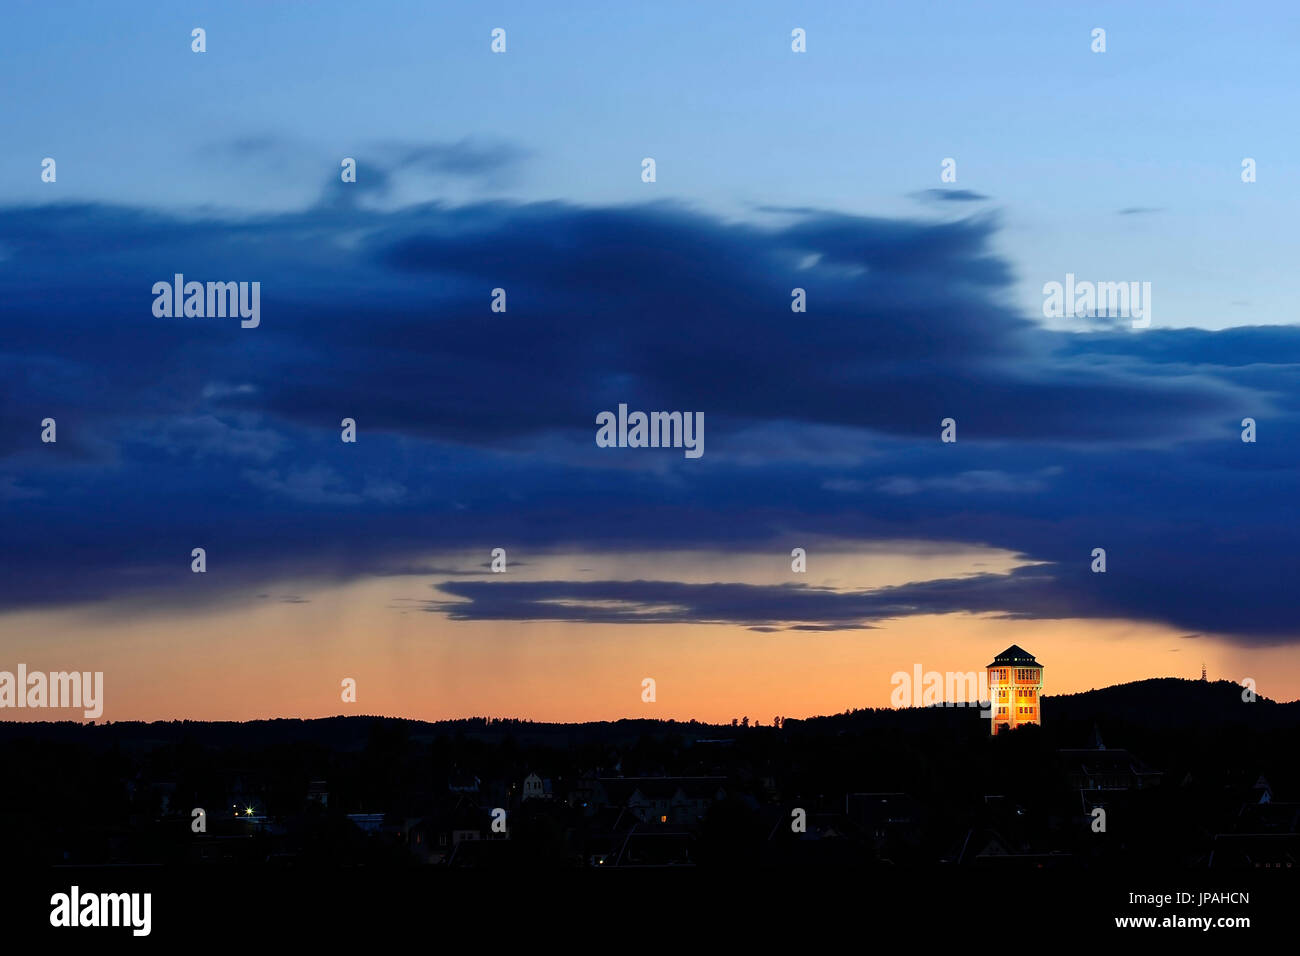 Hoist frame of the Karl-Liebknecht shaft in the Oelsnitz/Erzgebirge with rain cloud shortly after sundown - Stock Image